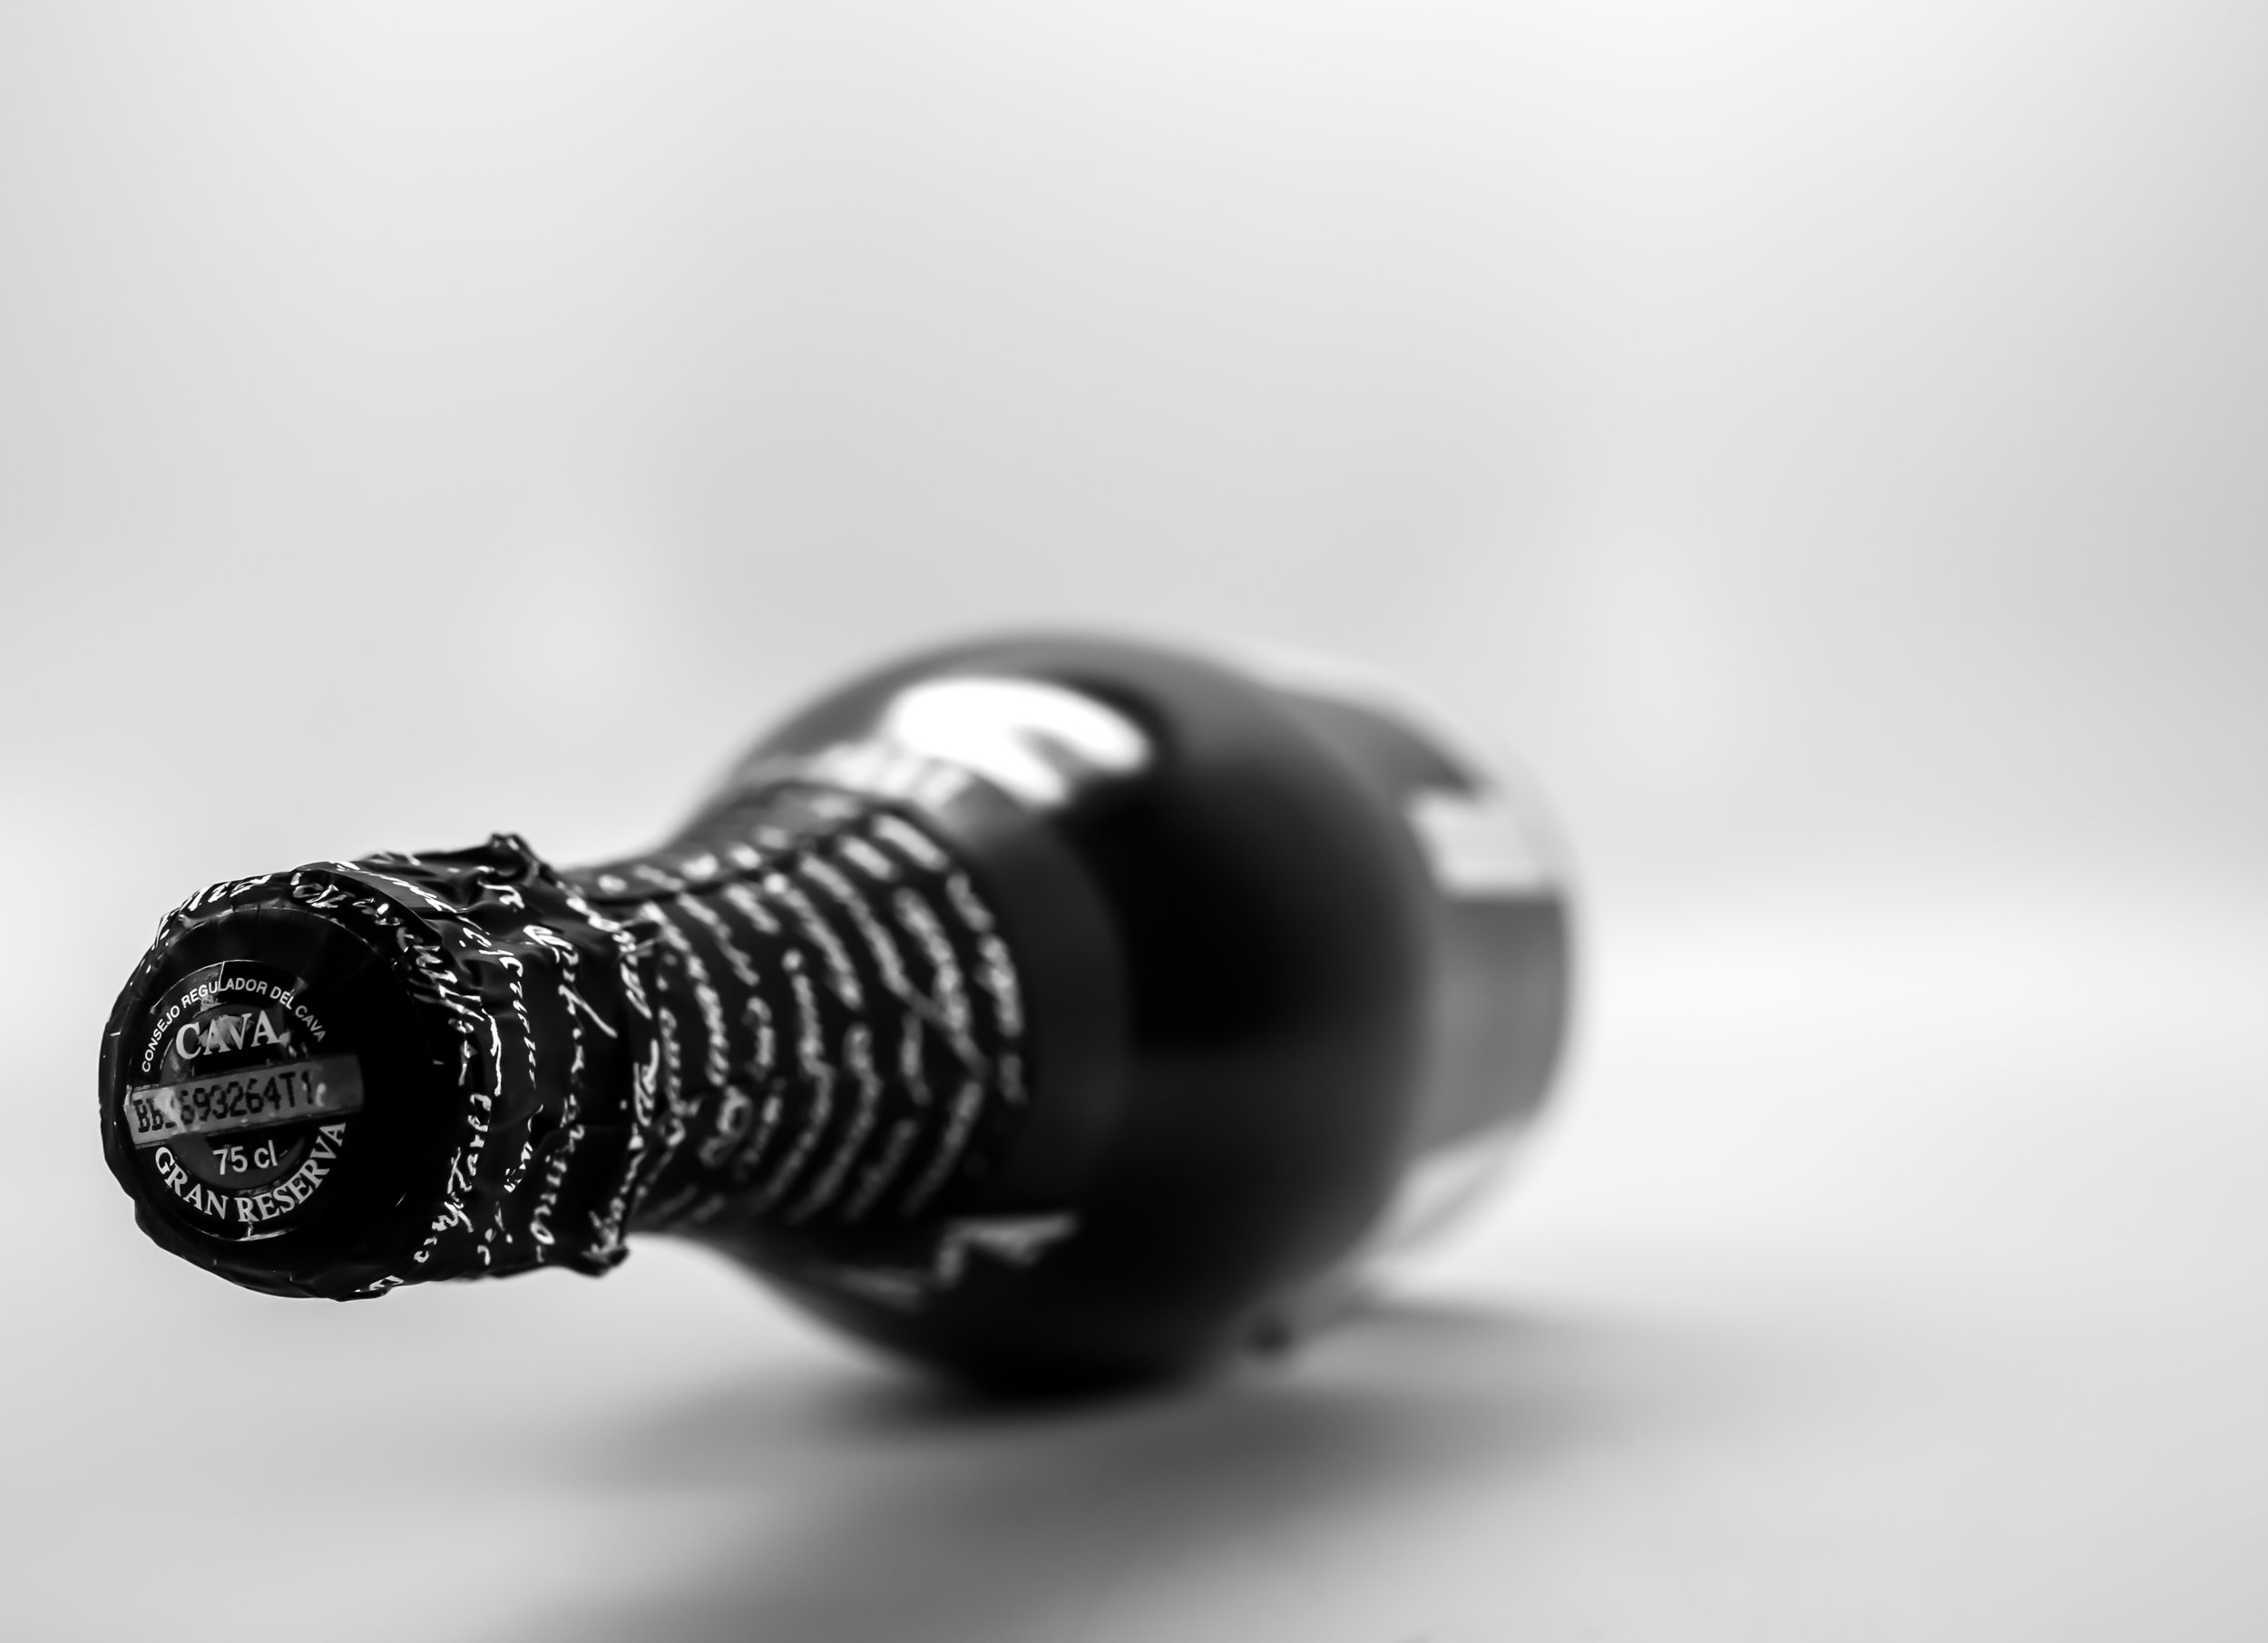 Musings by the Glass - Ode to Spanish Wine and Cheese - Spanish Cava Bottle in Black and White